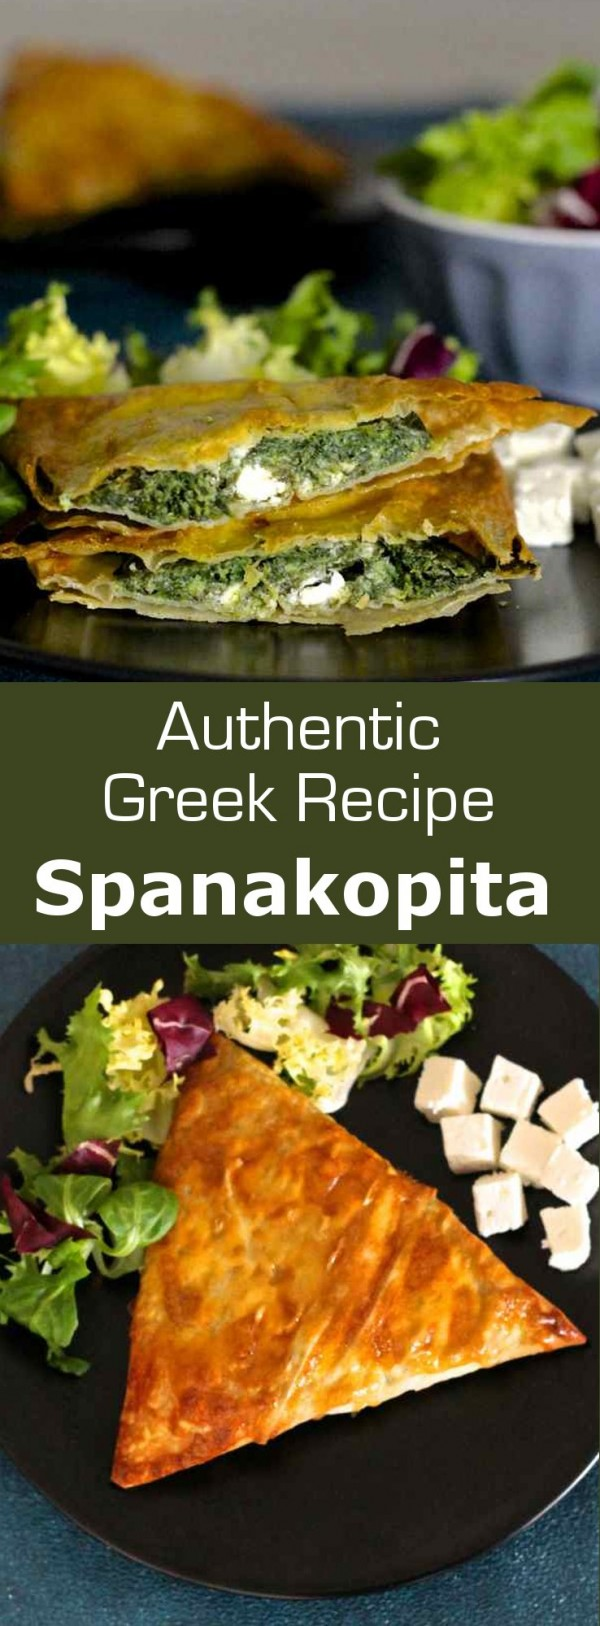 Get the recipe Authentic Greek Recipe Spanakopita @recipes_to_go